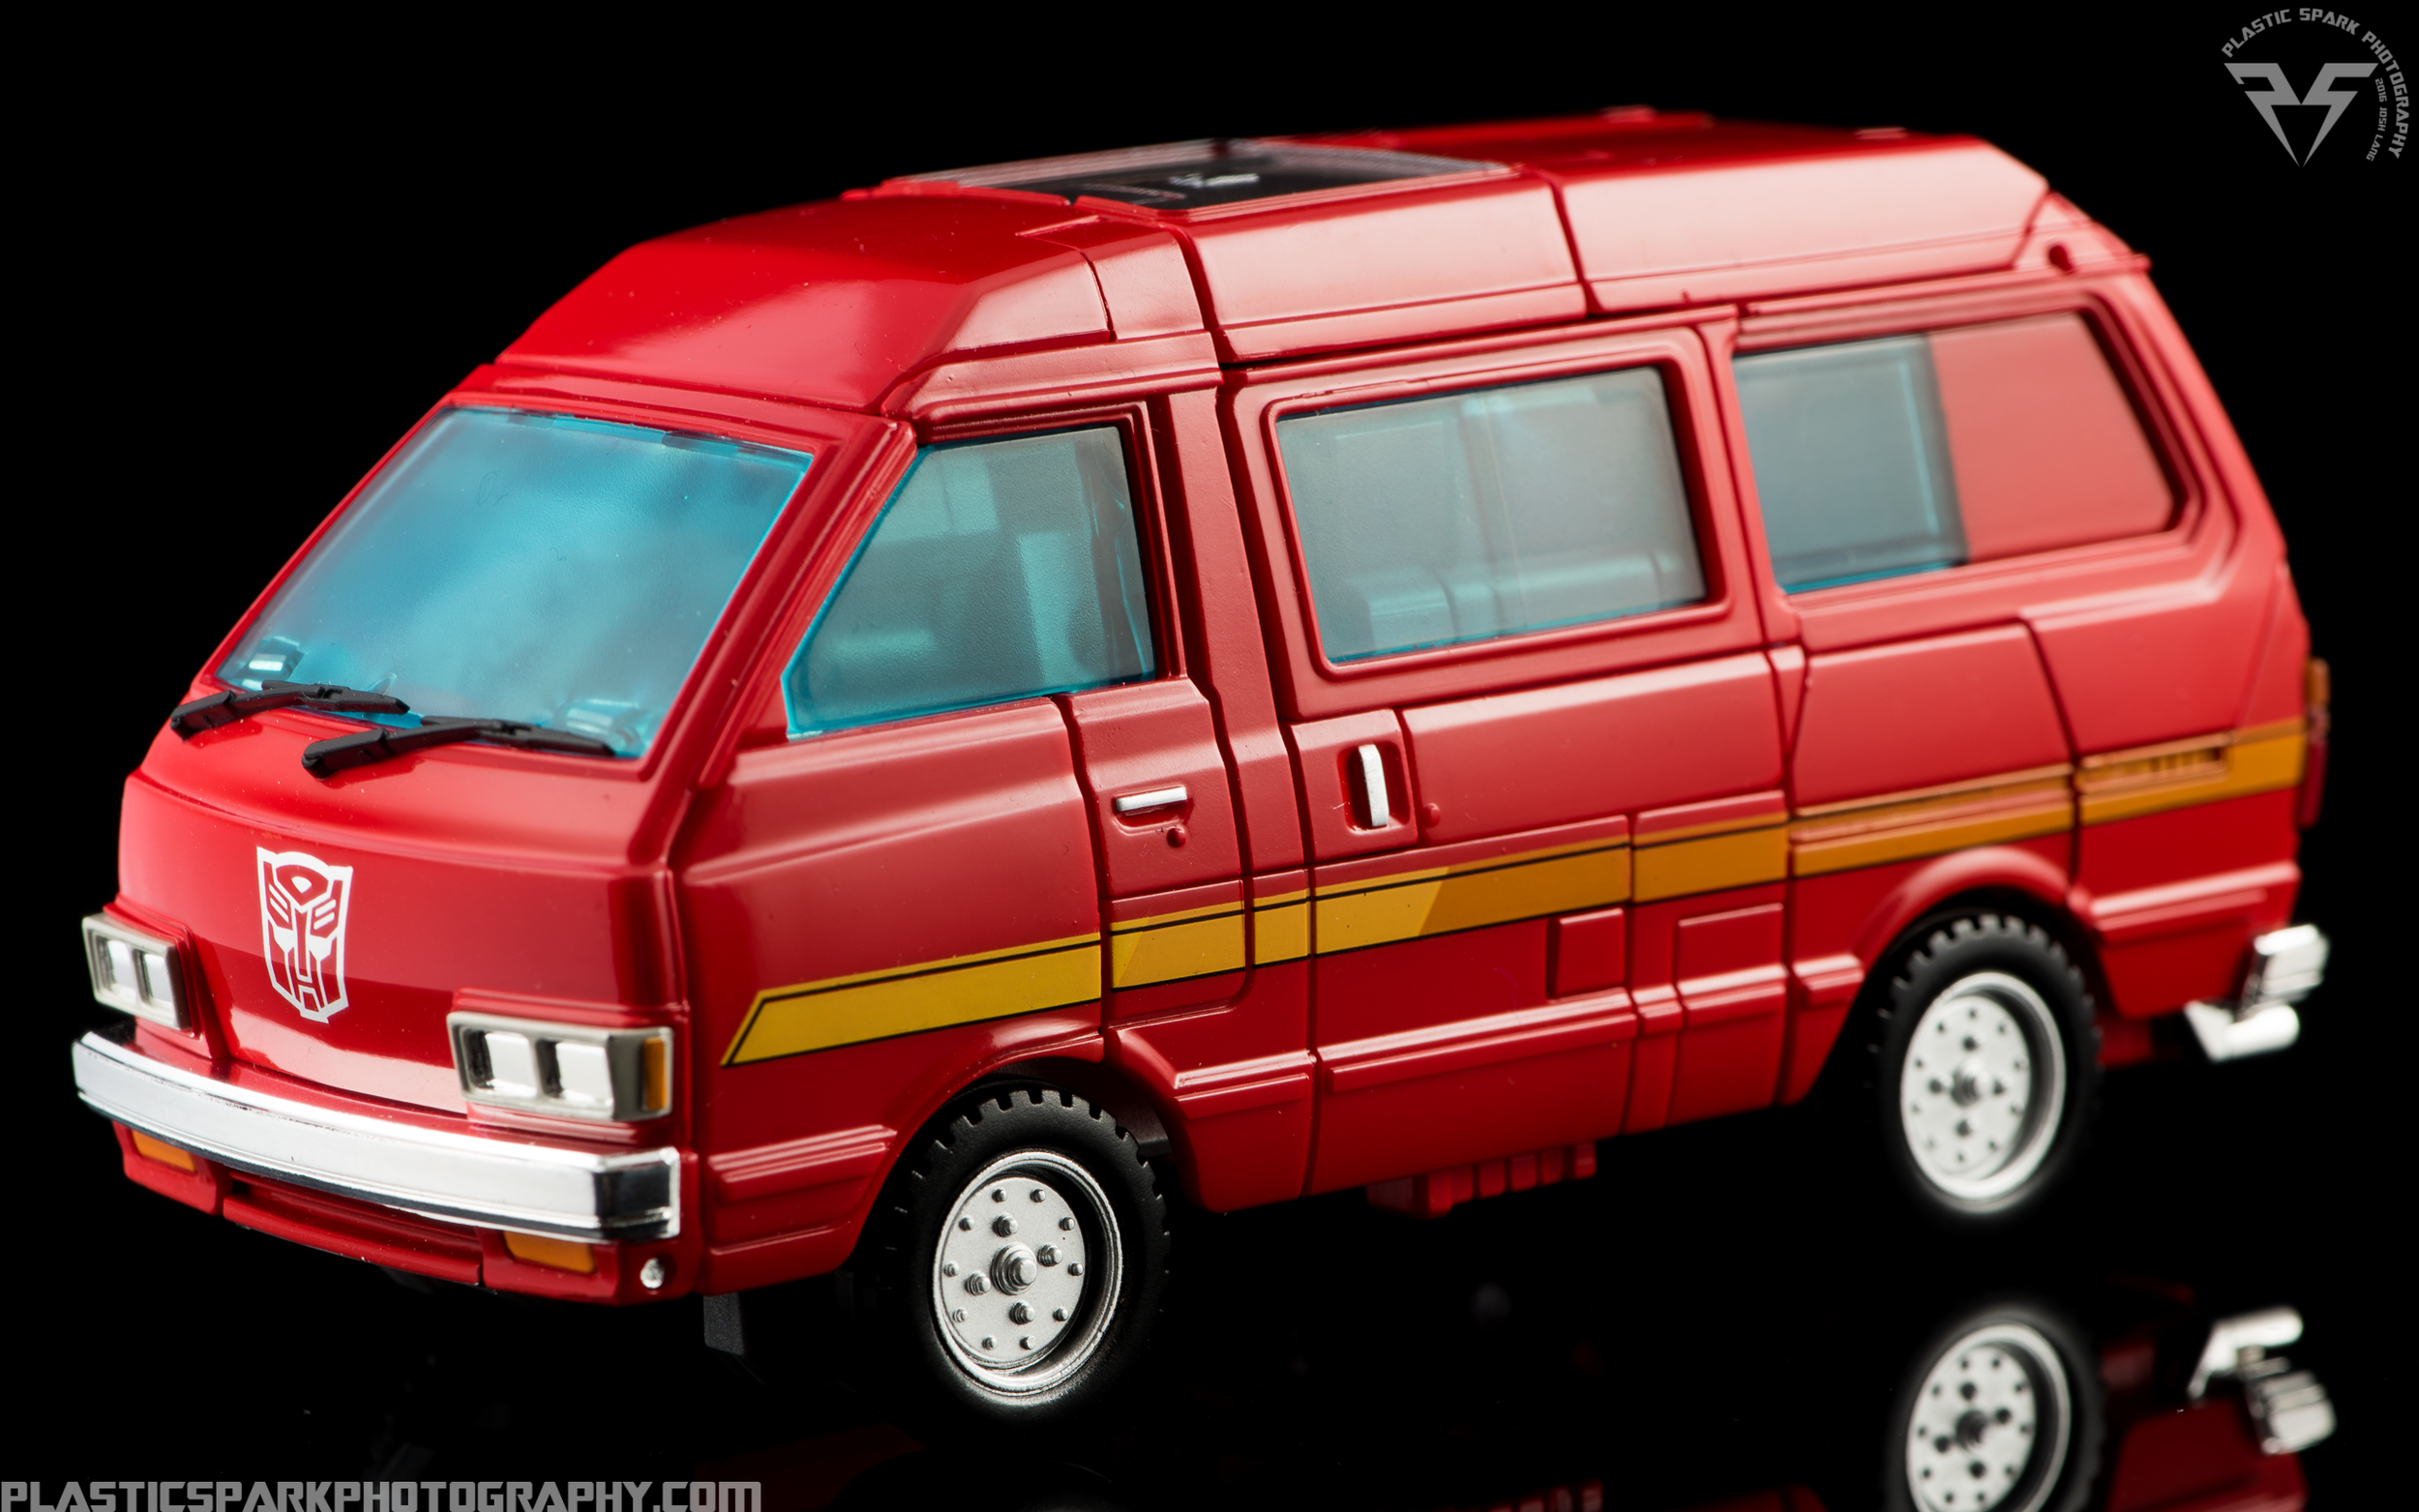 MP-27-Ironhide-(2-of-23).png